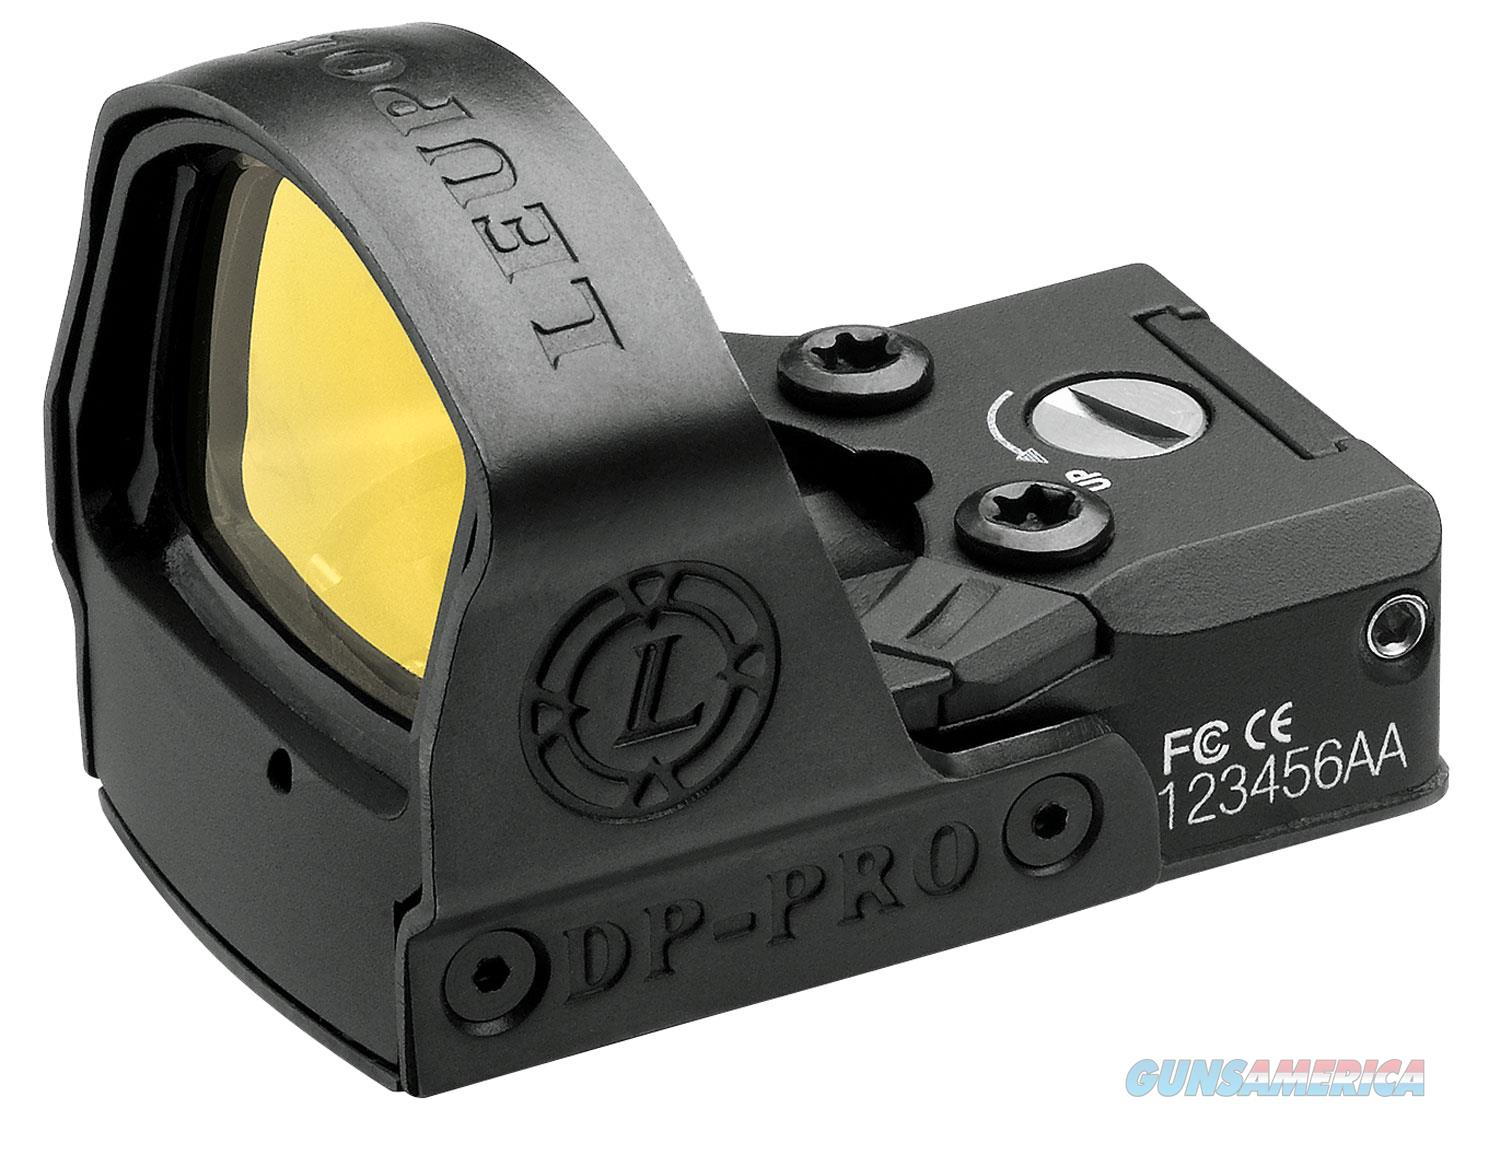 Leupold 119688 DeltaPoint Pro 1x Objective Unlimited Eye Relief 2.5 MOA Black  Non-Guns > Scopes/Mounts/Rings & Optics > Tactical Scopes > Red Dot